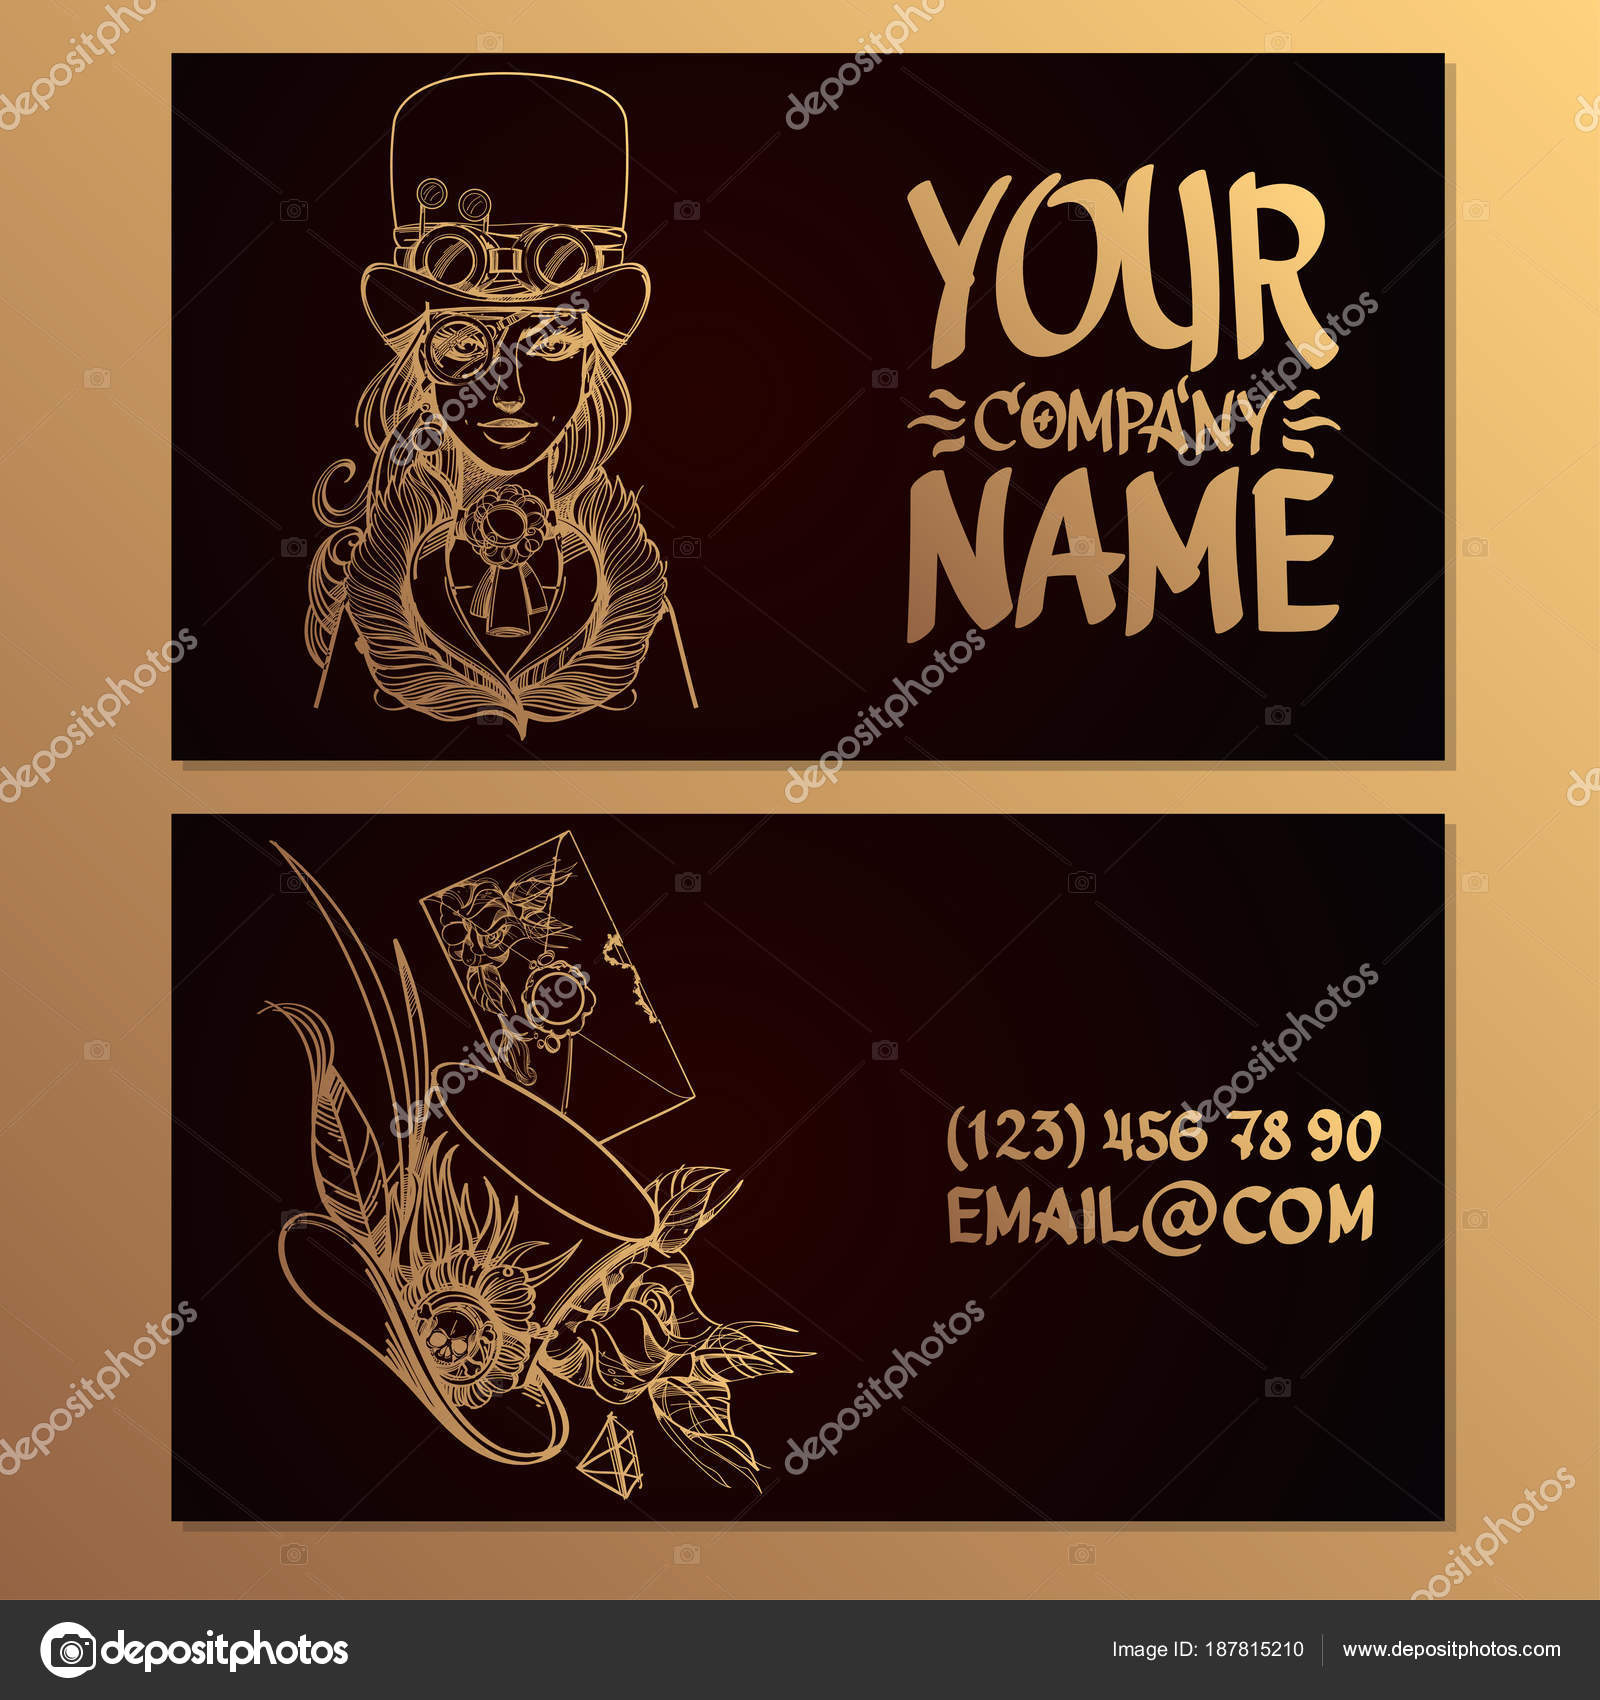 card image woman hat style simpank templates creating business cards